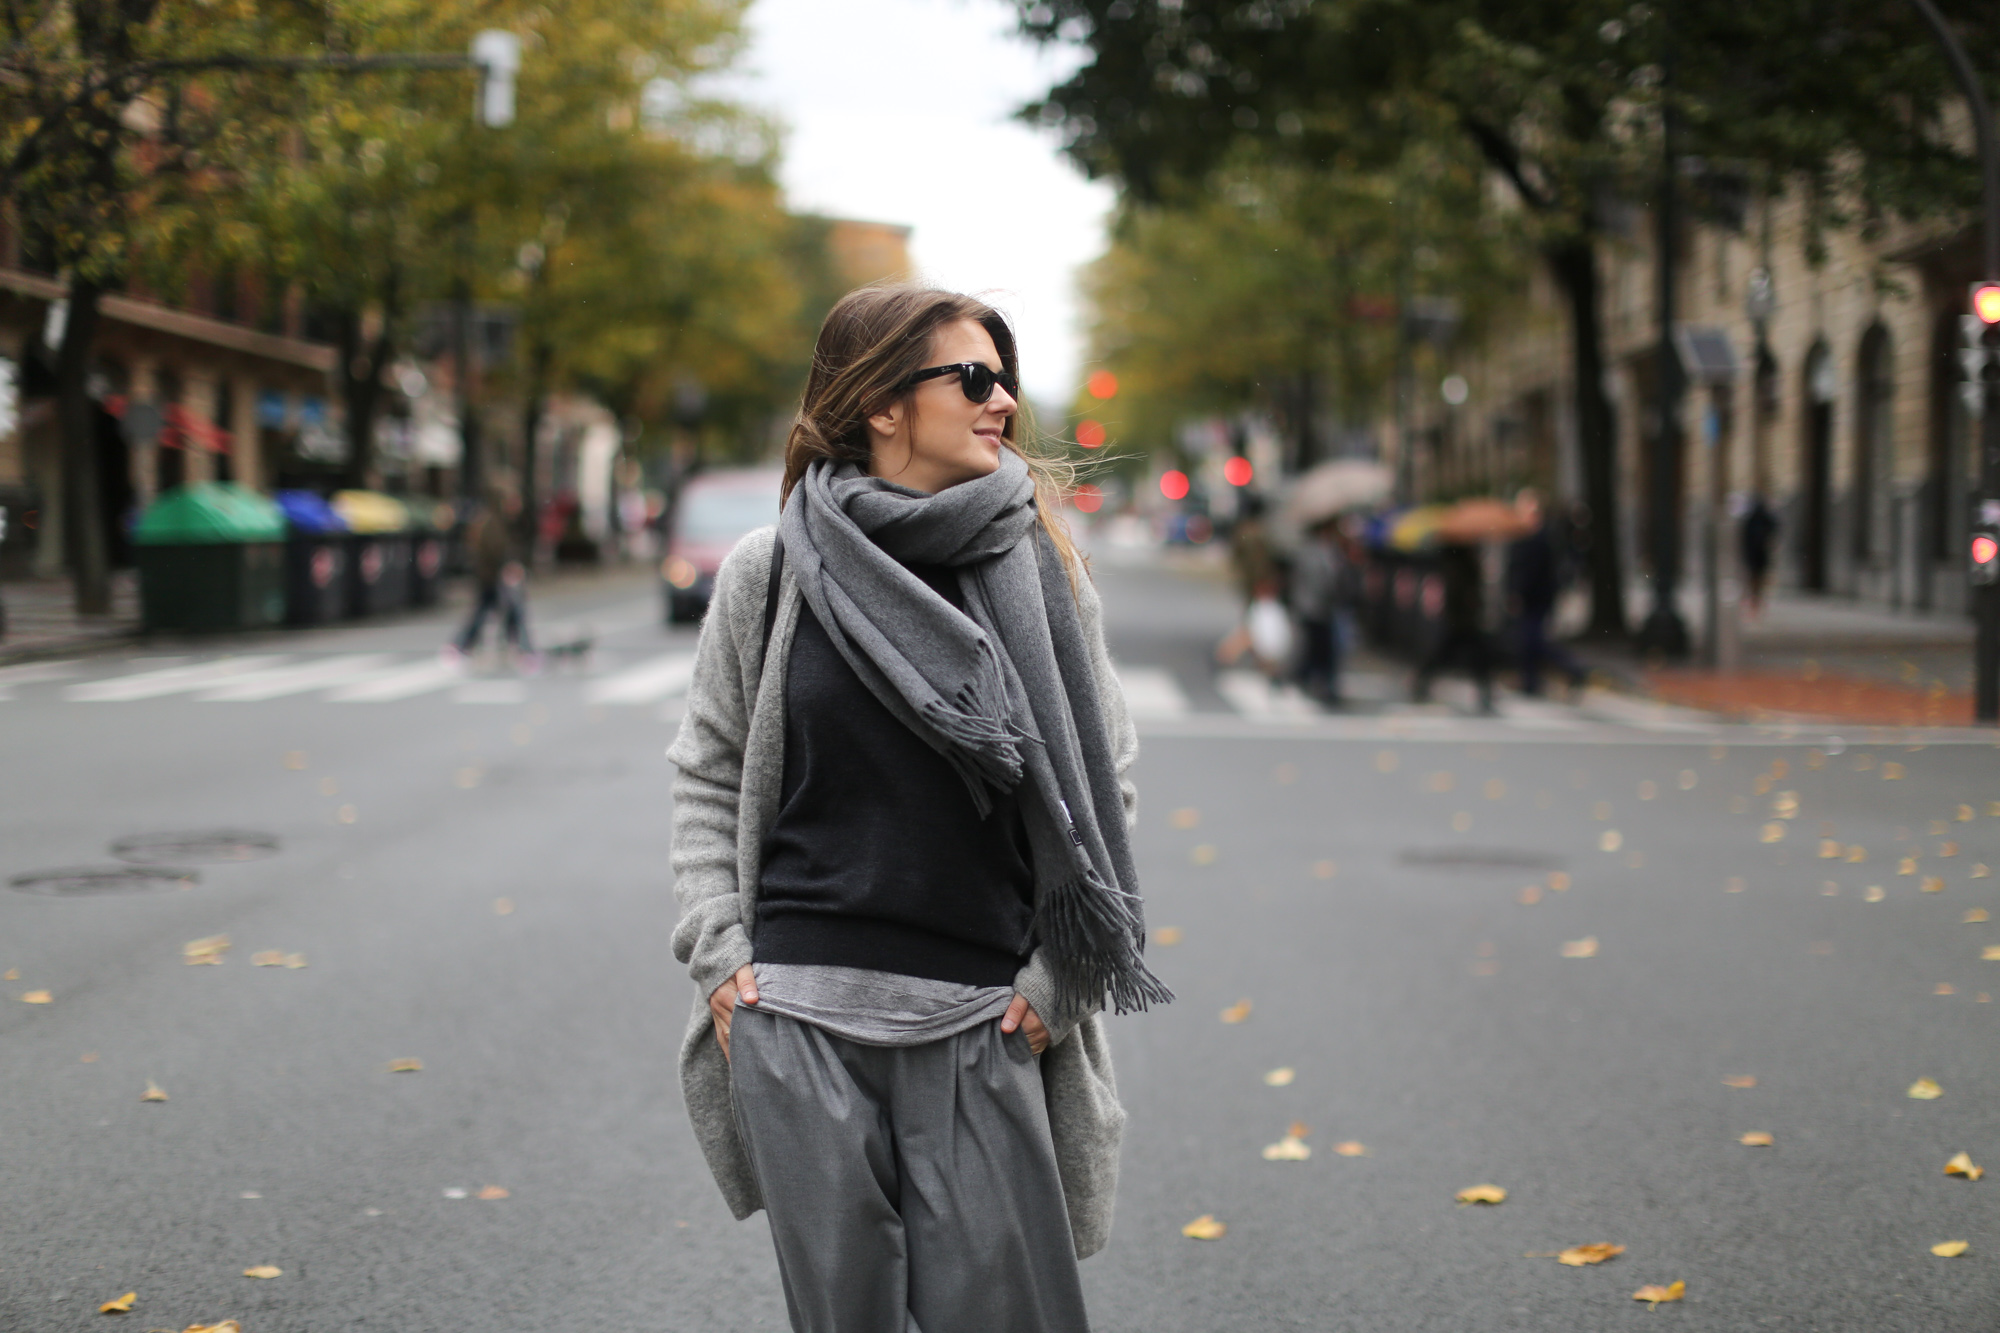 Clochet-streetstyle-all-grey-suiteblanco-culottes-h&m-trend-angora-cardigan-mango-pointy-loafers-13